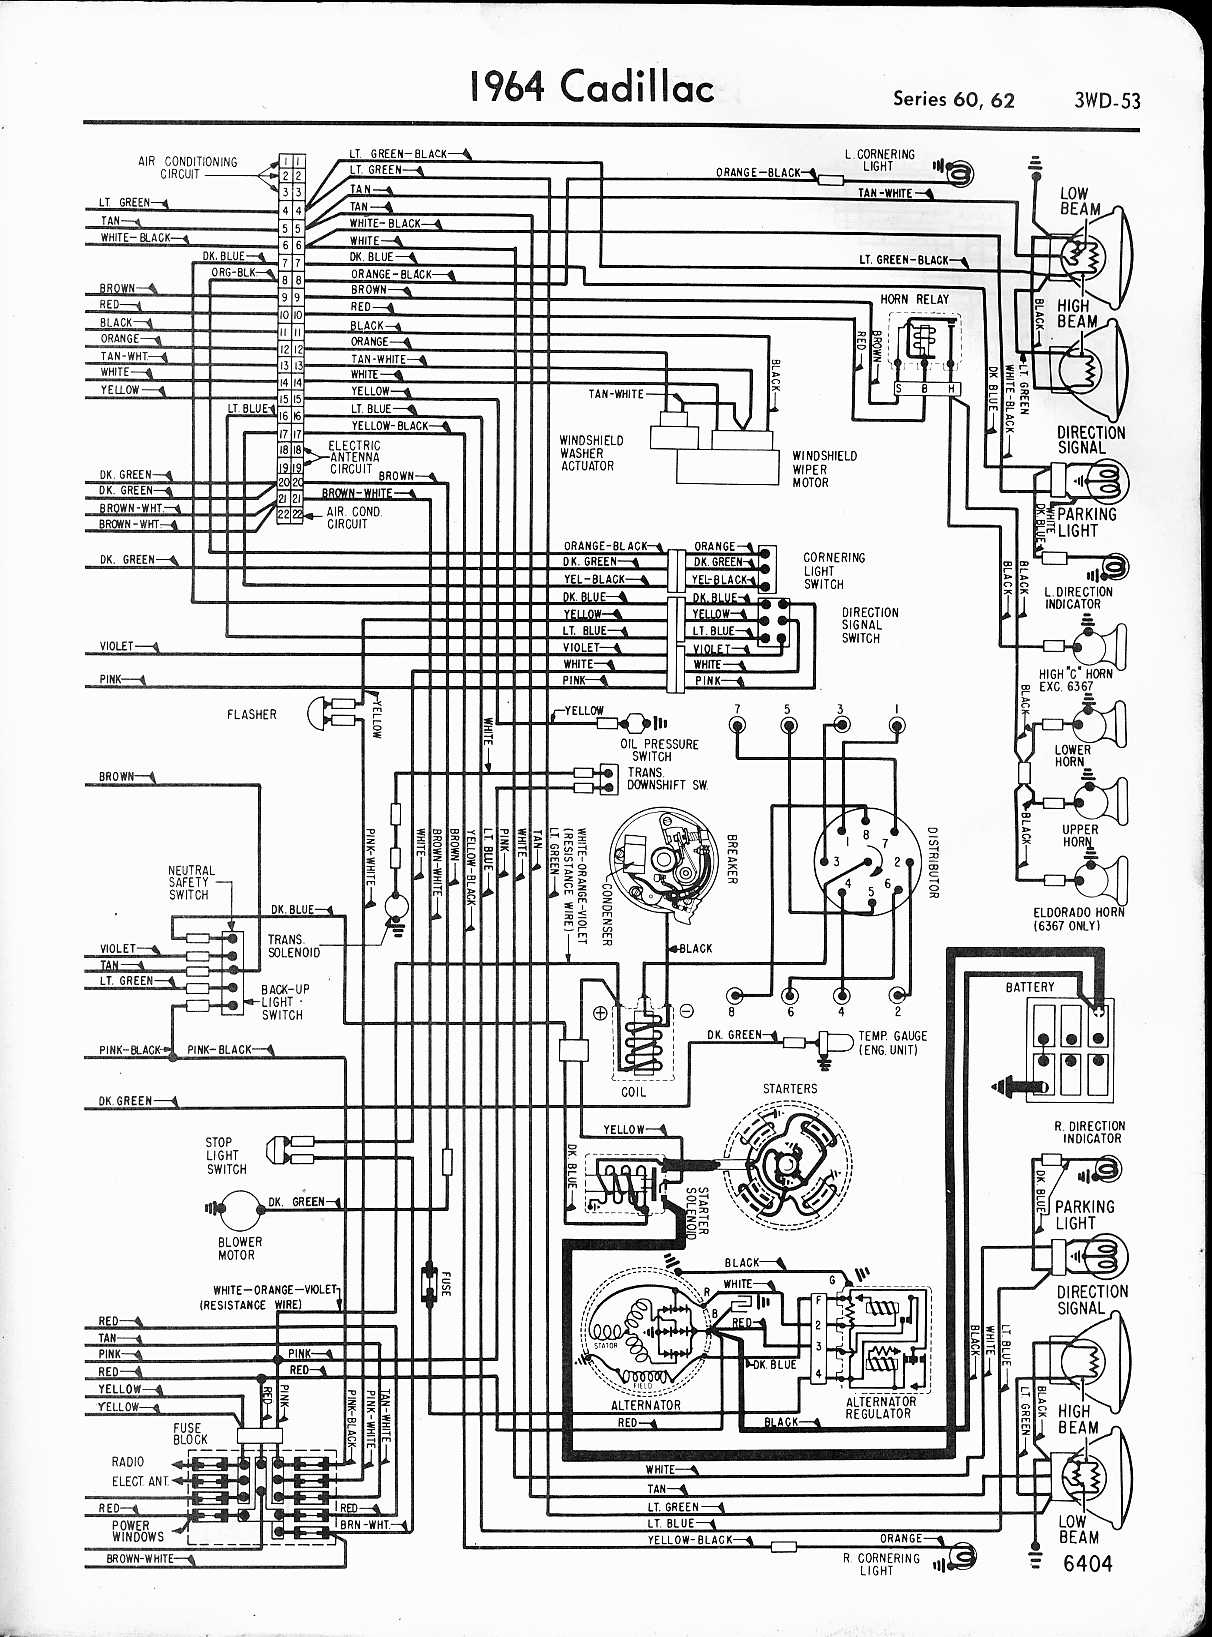 1955 Cadillac Series 62 Wiring Diagram Electrical Schematics 1947 Ford Coupe Diagrams 1957 1965 Tail